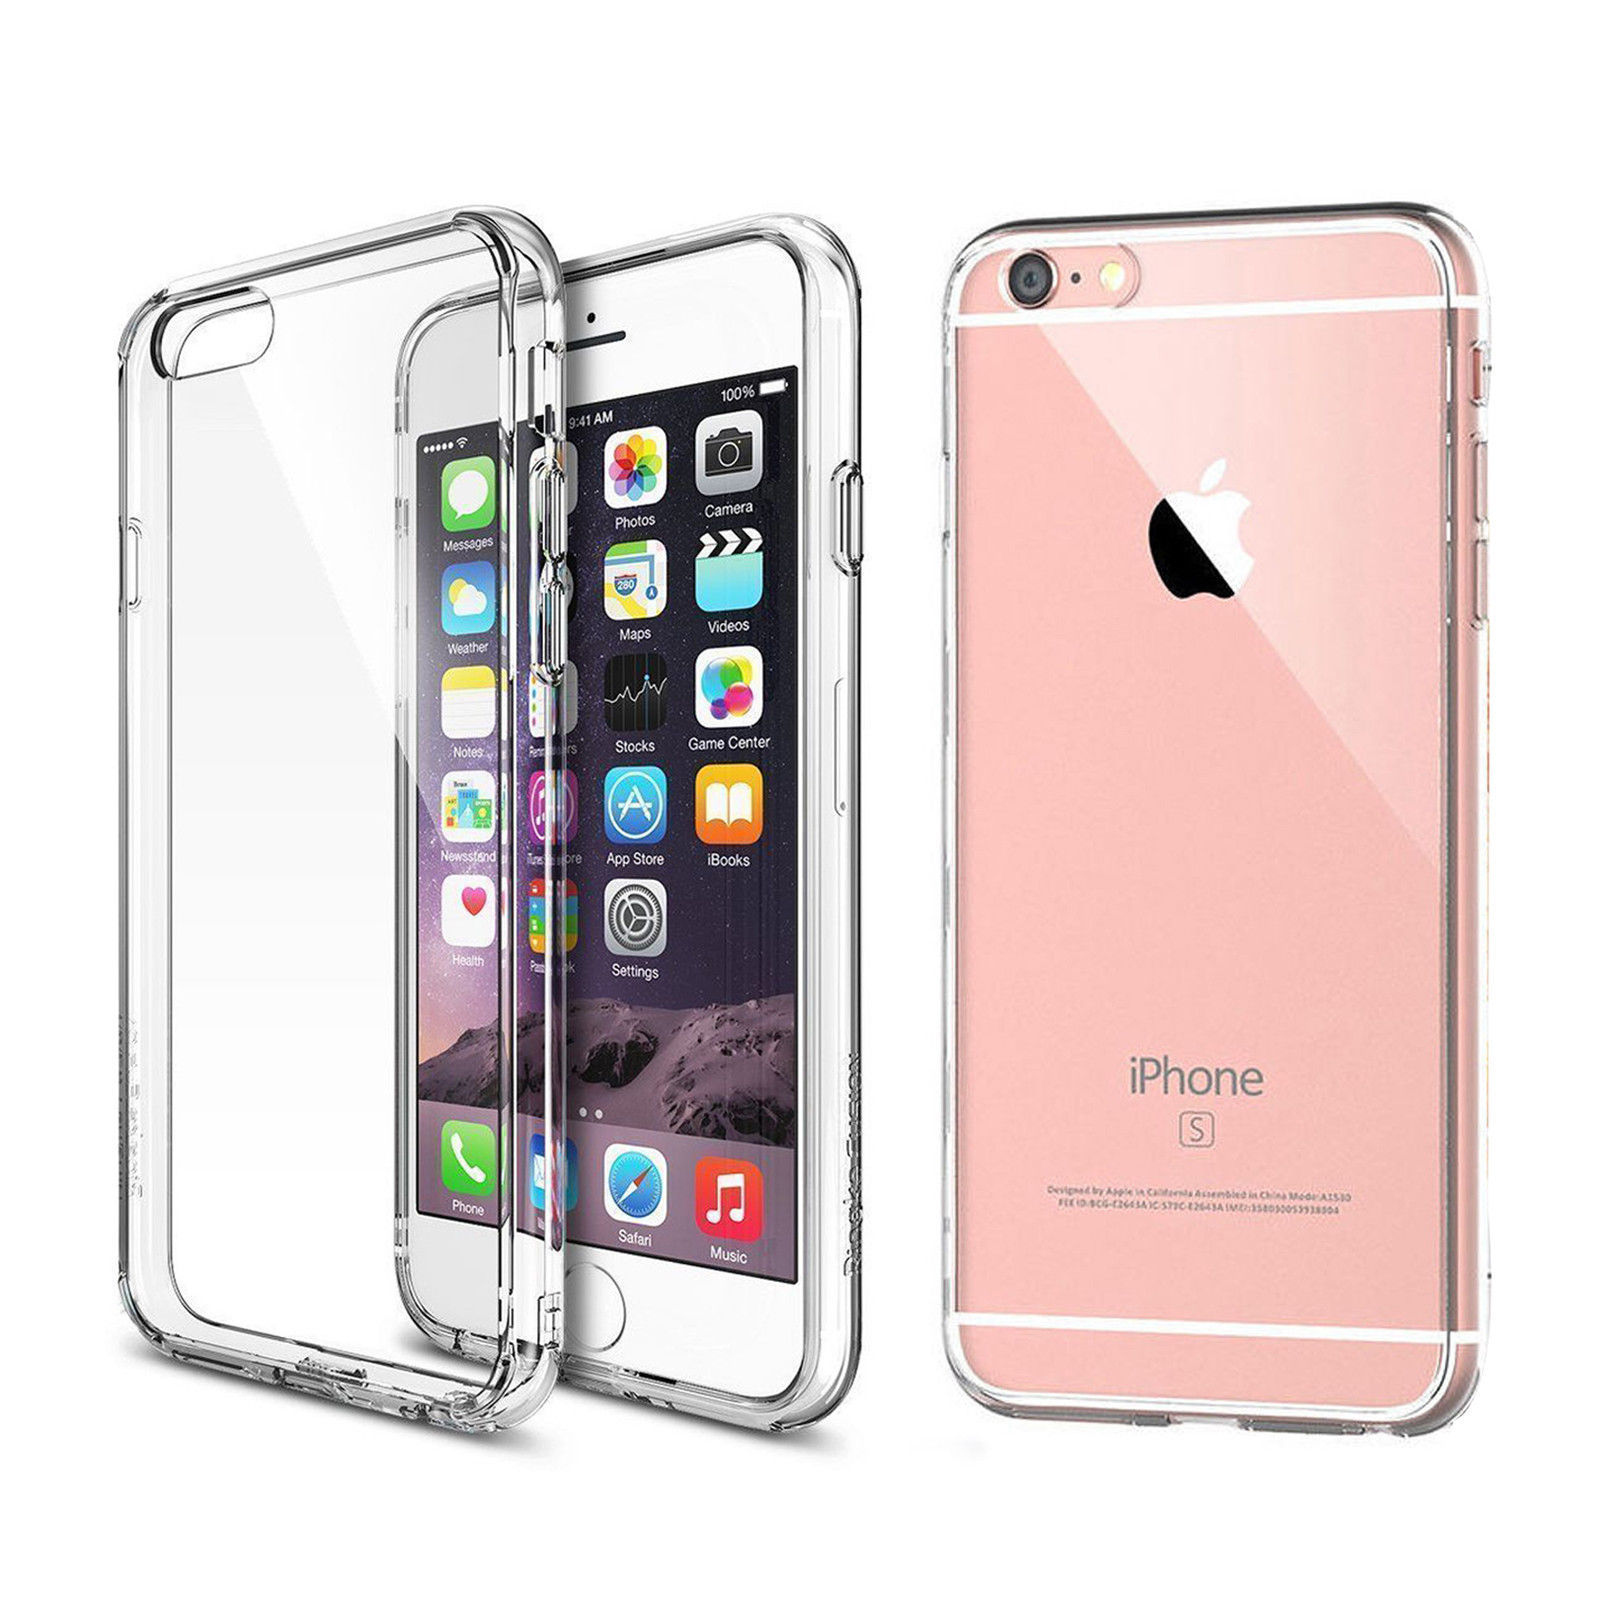 iPhone 6/ 6s/ 6 Plus/ 6s Plus [Clear